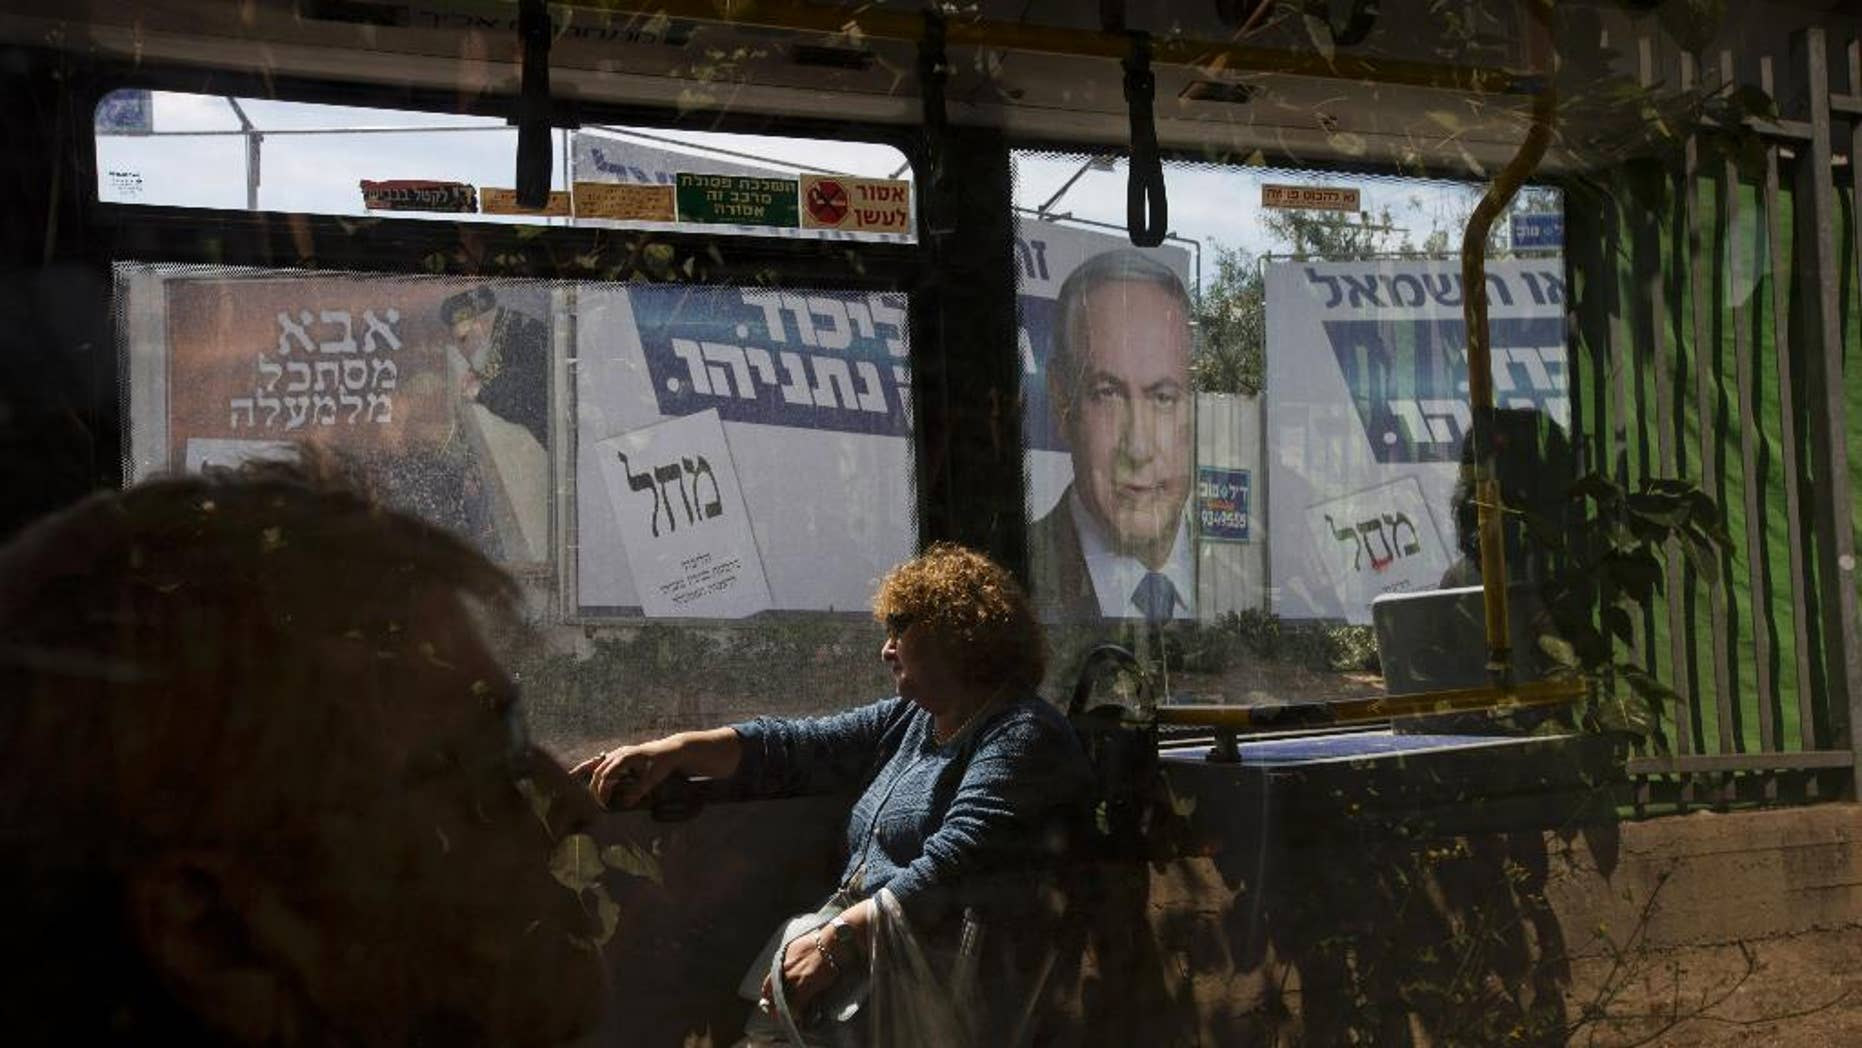 """FILE - In this Monday, March 16, 2015 file photo, passengers sit in a bus driving past a billboard with the photo of Israeli Prime Minister Benjamin Netanyahu, right, and late rabbi Ovadia Yosef, a long time spiritual leader of the Shas party, a day ahead of legislative elections, in Bnei Brak near Tel Aviv, Israel. The displeasure felt in some quarters over  Netanyahu's win last week has placed front and center the world community's unwritten obligation to accept the results of a truly democratic vote. It is a basic tenet of the modern world order which has survived the occasional awkward result _ as well as recent decades' emergence of some less-than-pristine democracies around the globe.  The Hebrew sign at left reads, """" Father is looking from above.'' At right Hebrew reads, """"Likud, Netanyahu."""" (AP Photo/Ariel Schalit, File)"""